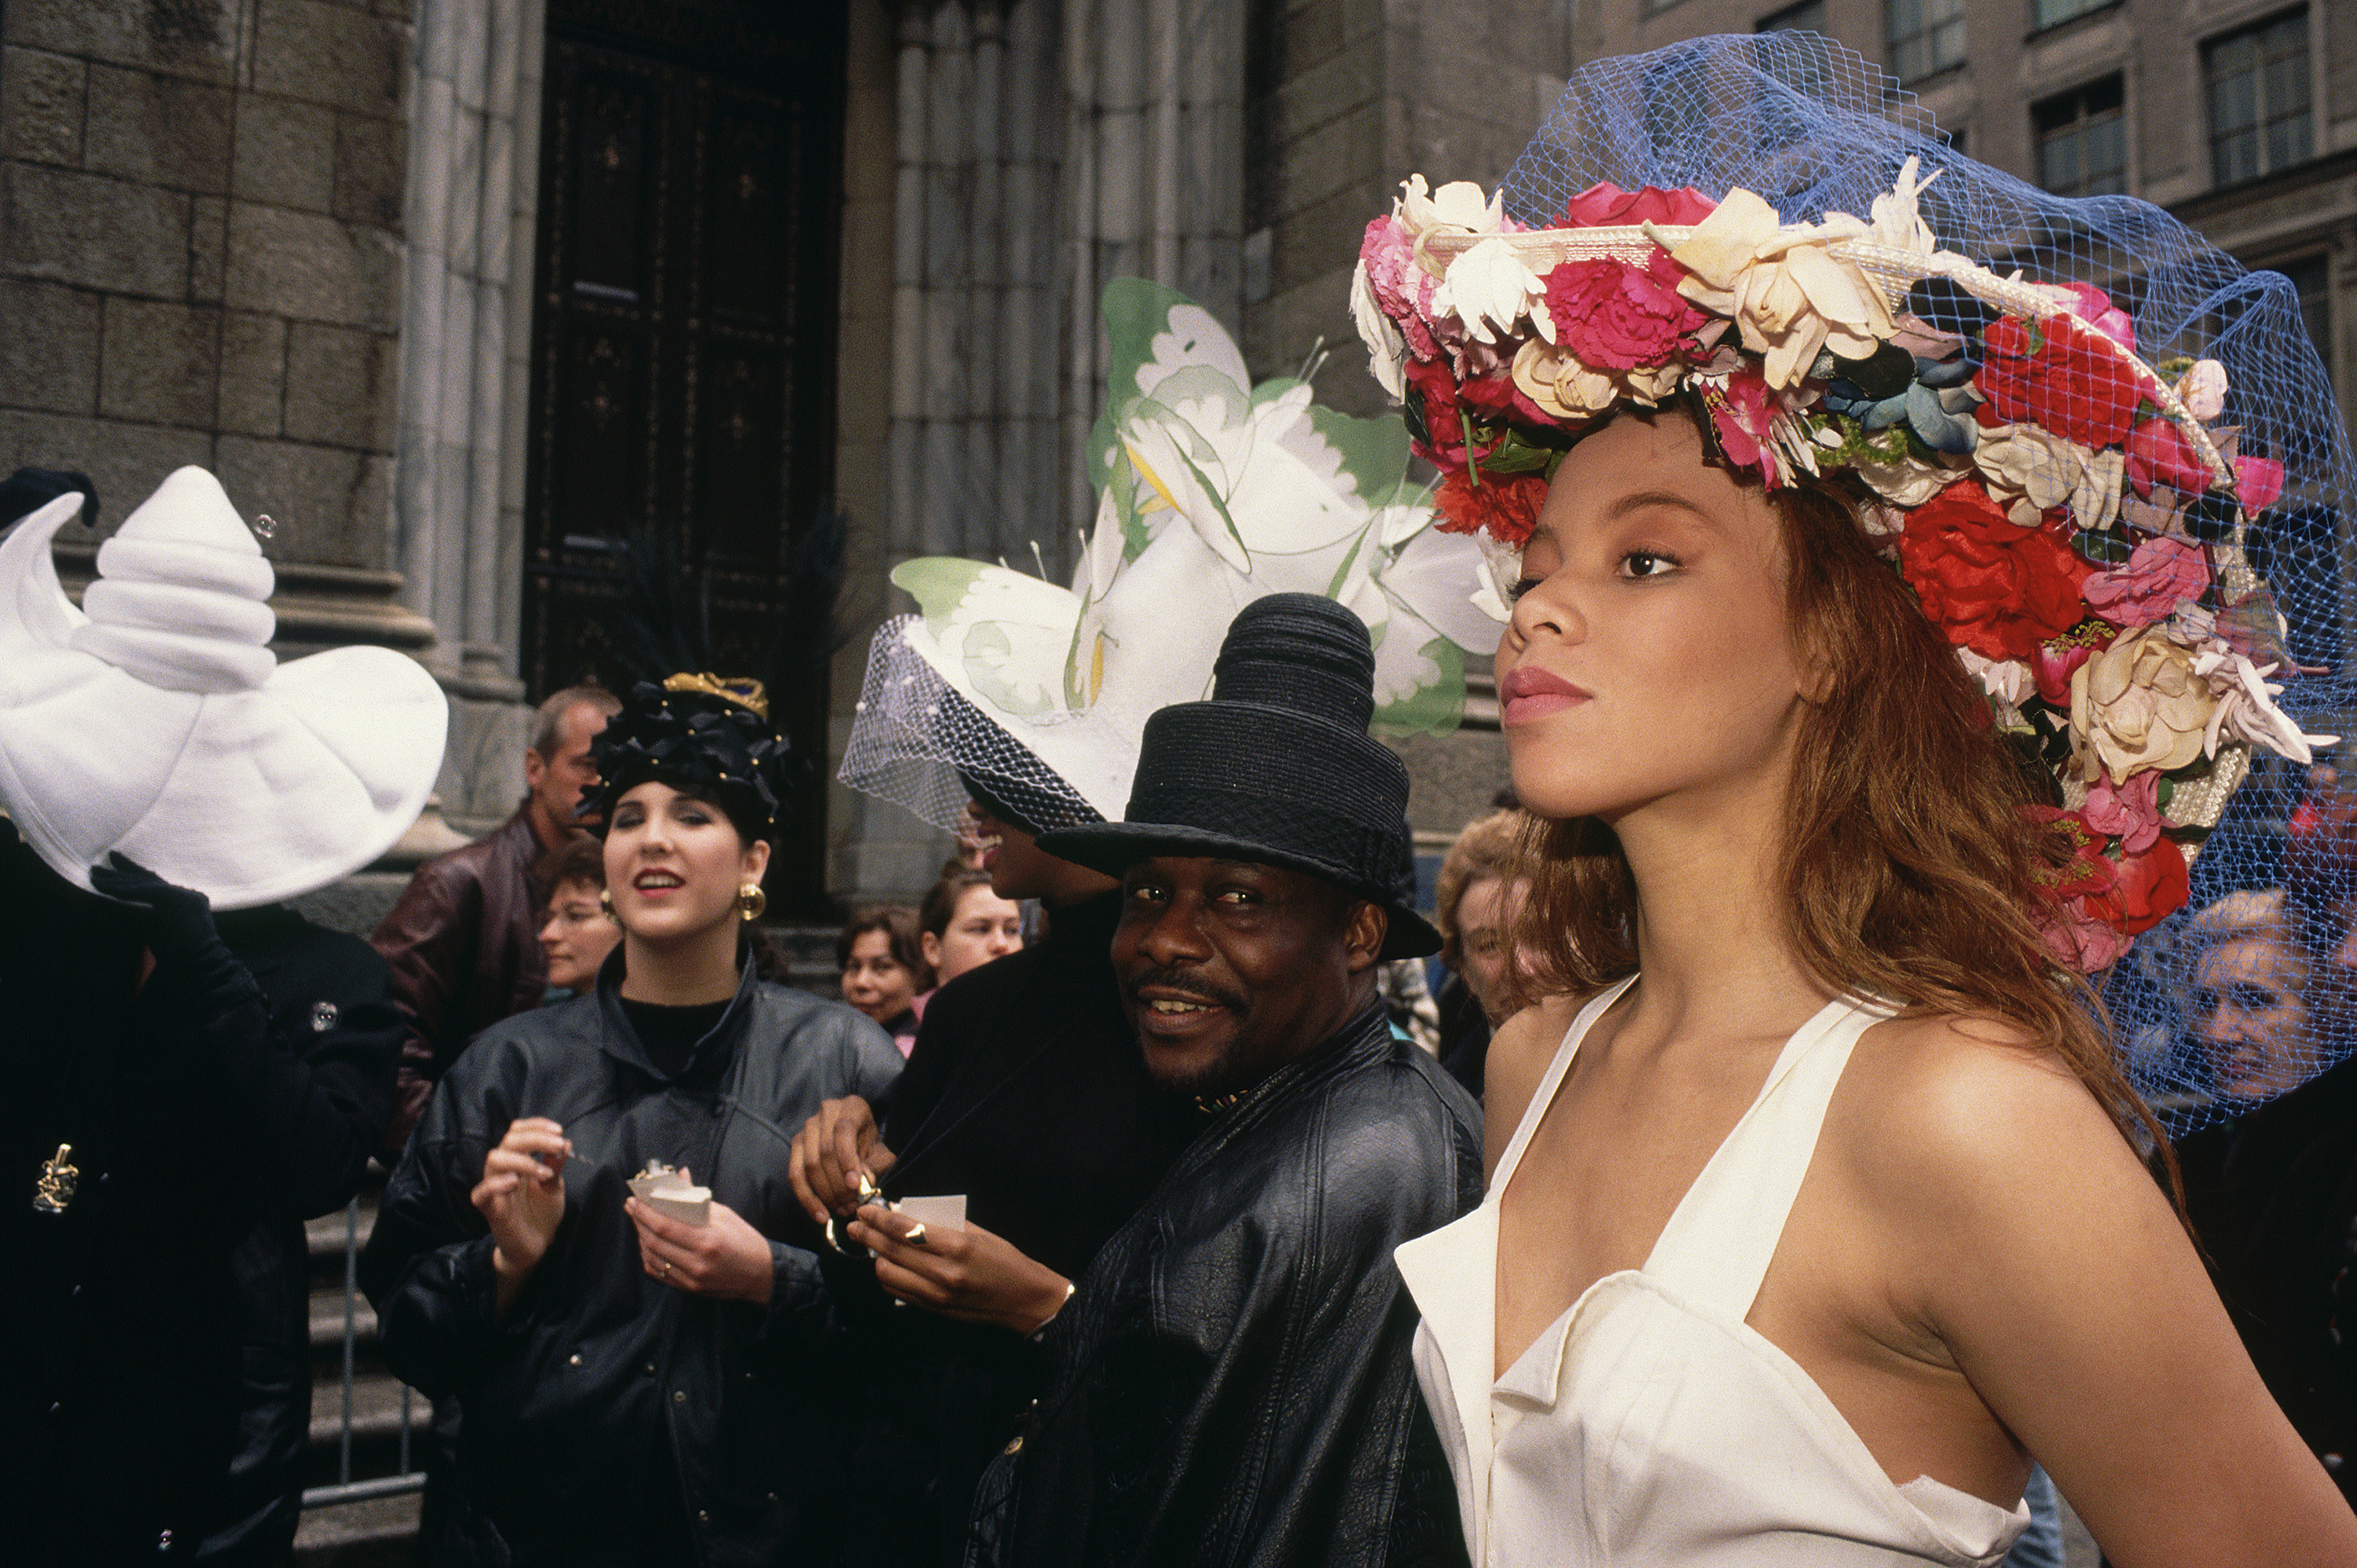 A woman in a floral hat outside a church and men in black